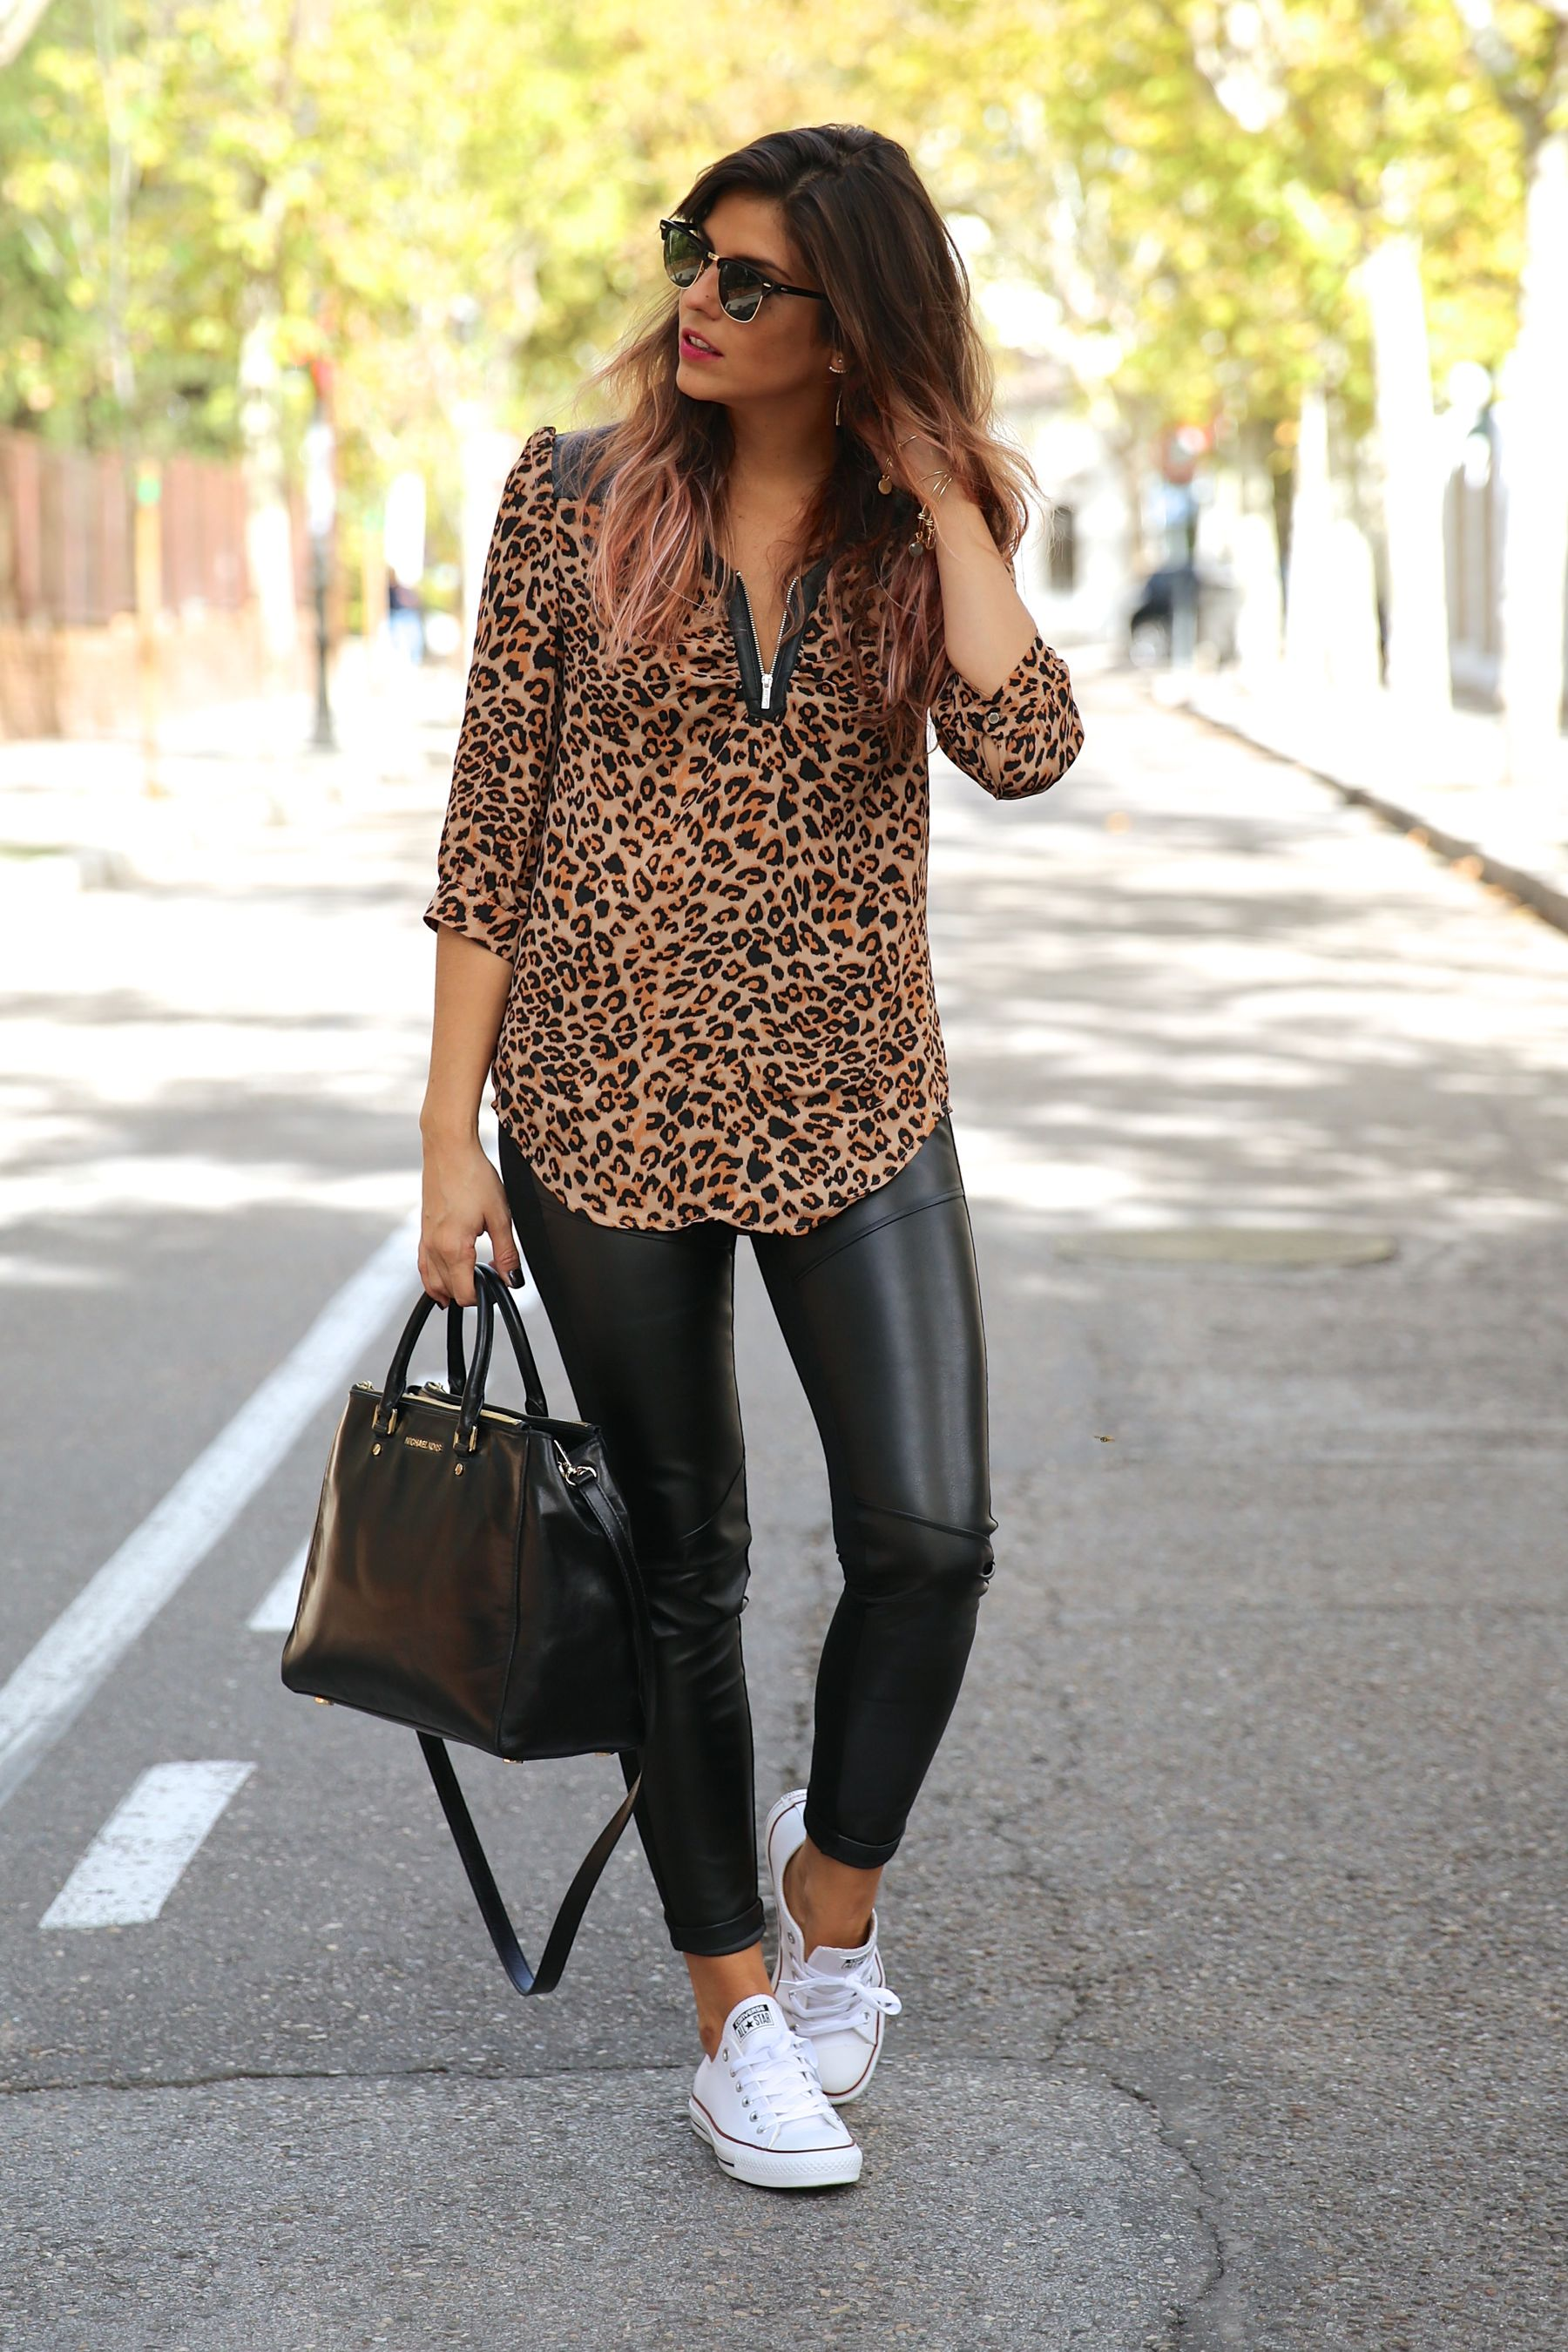 trendy_taste-look-outfit-street_style-ootd-blog-blogger-fashion_spain-moda_españa-leo_print-leopardo-converse-all_star-michael_kors-leggings-clubmaster-15